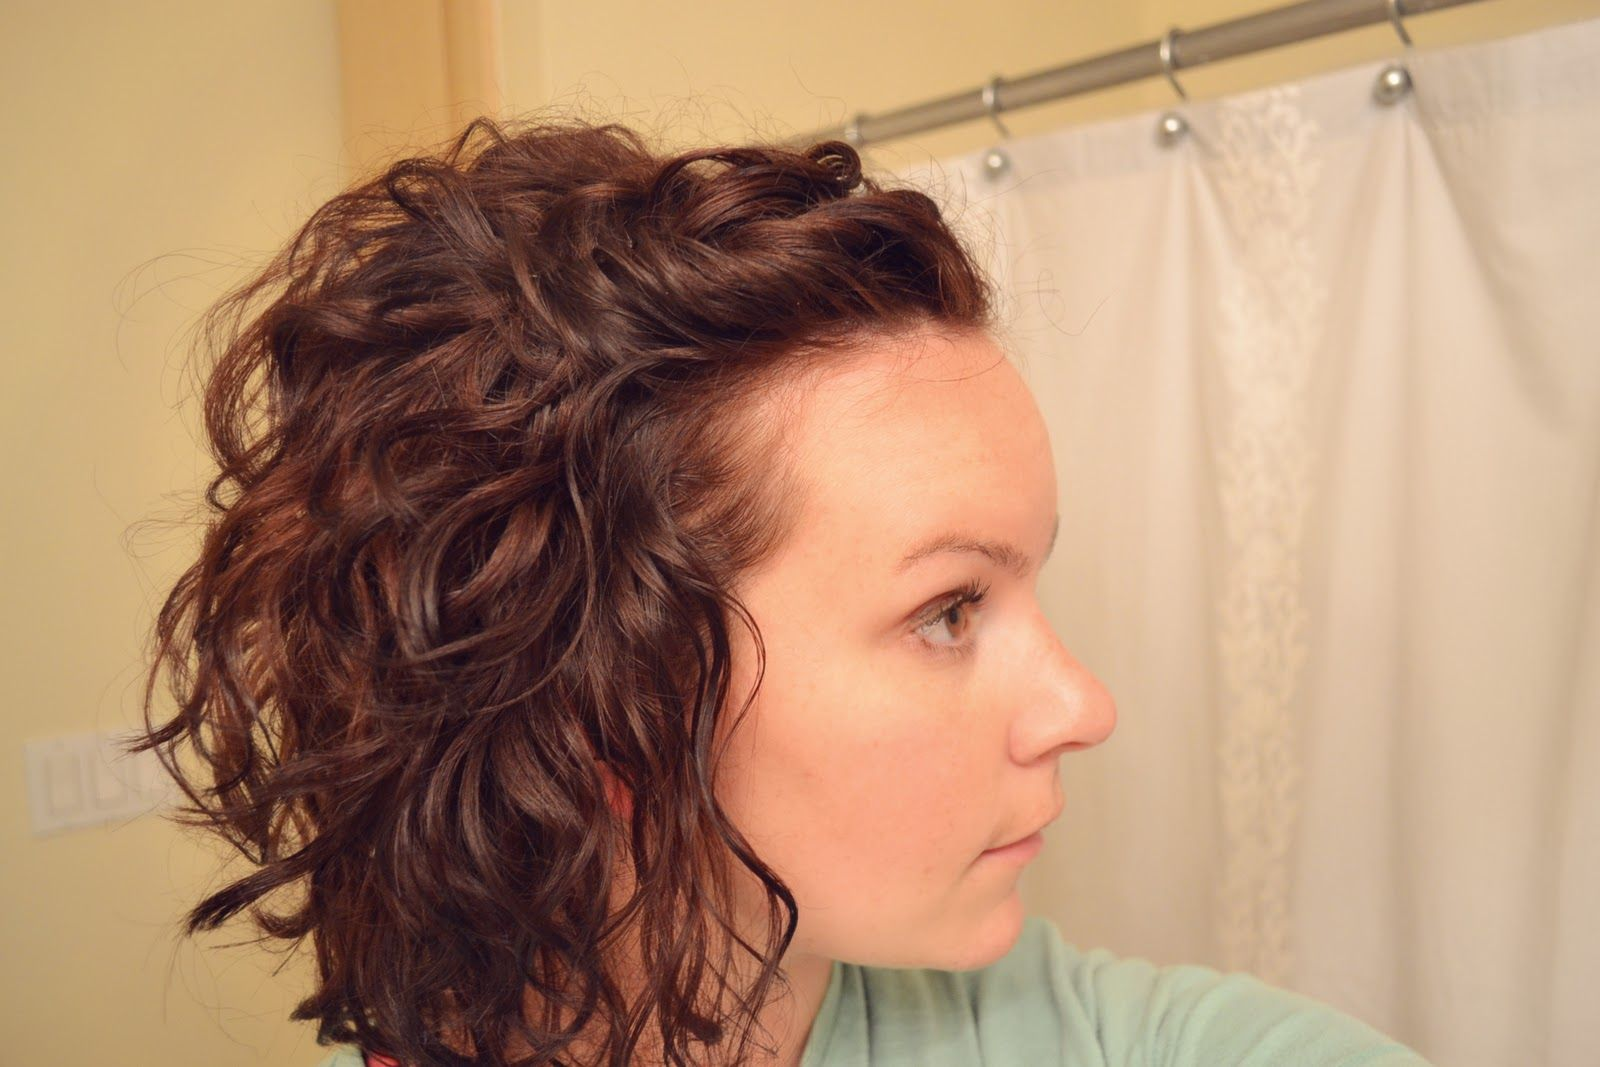 Curly hair without the crunch